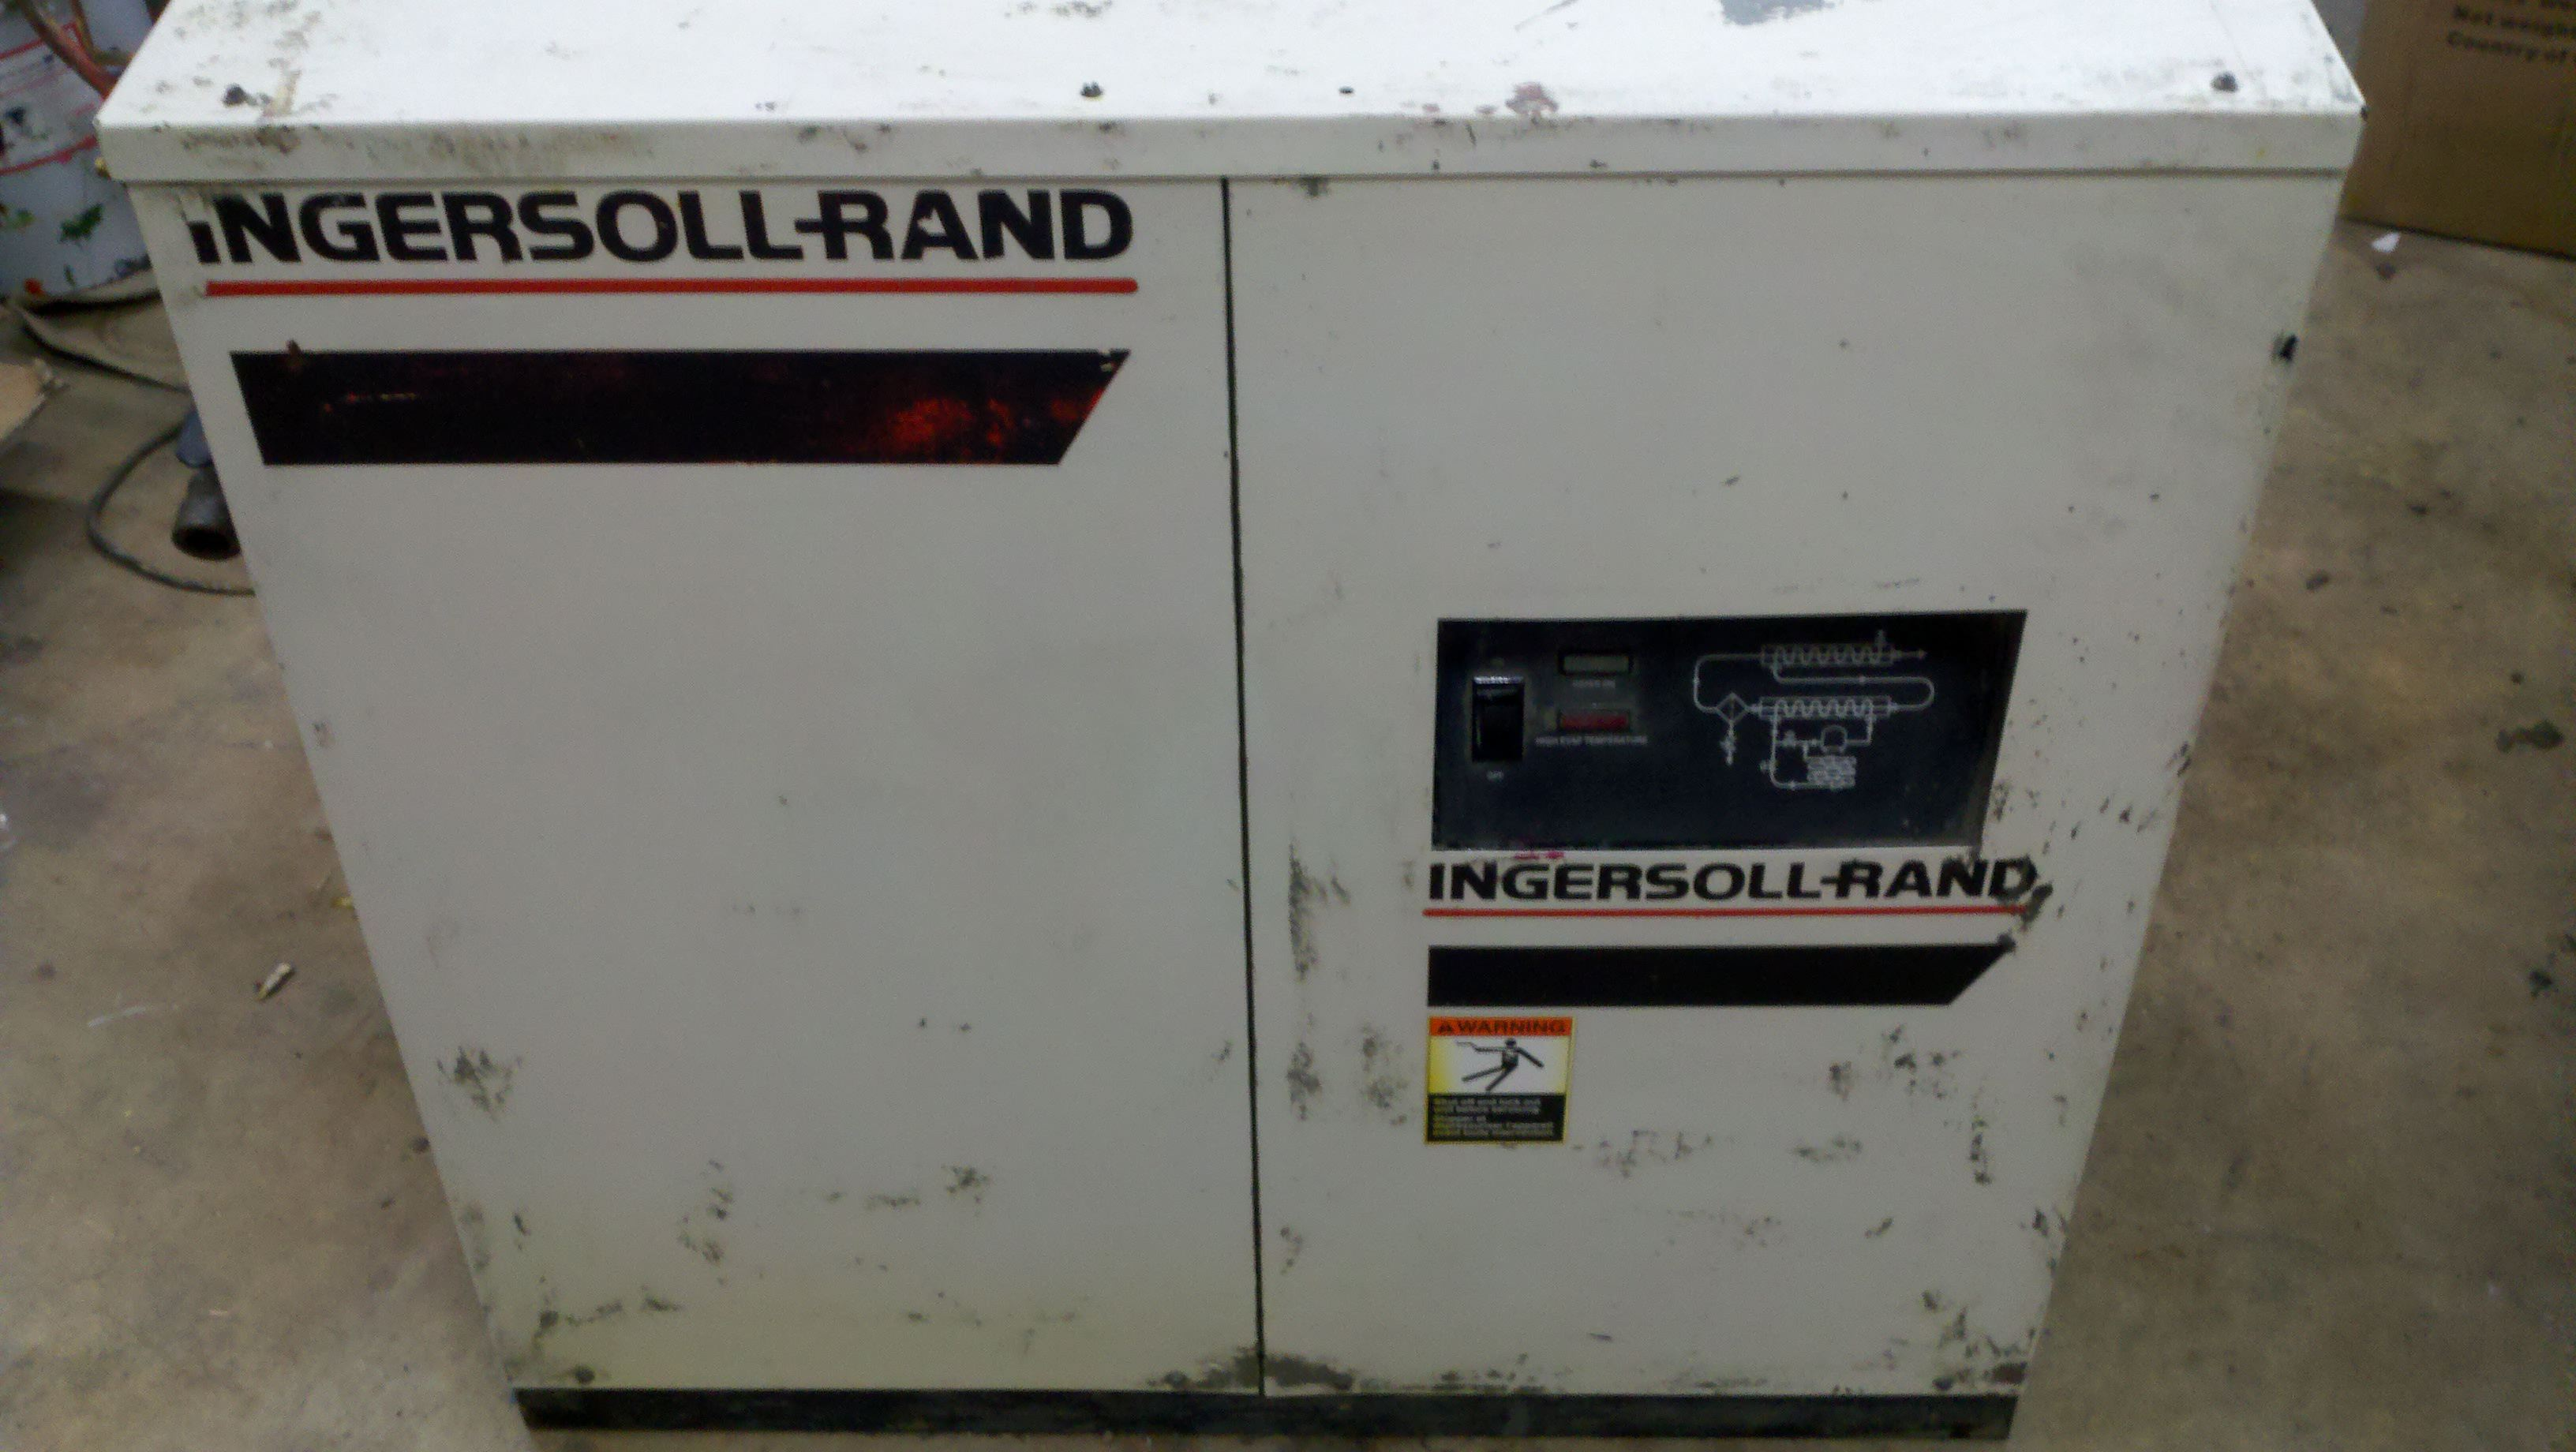 Ingersoll Rand Compressor And Air Dryer For Pnuematic Press border=